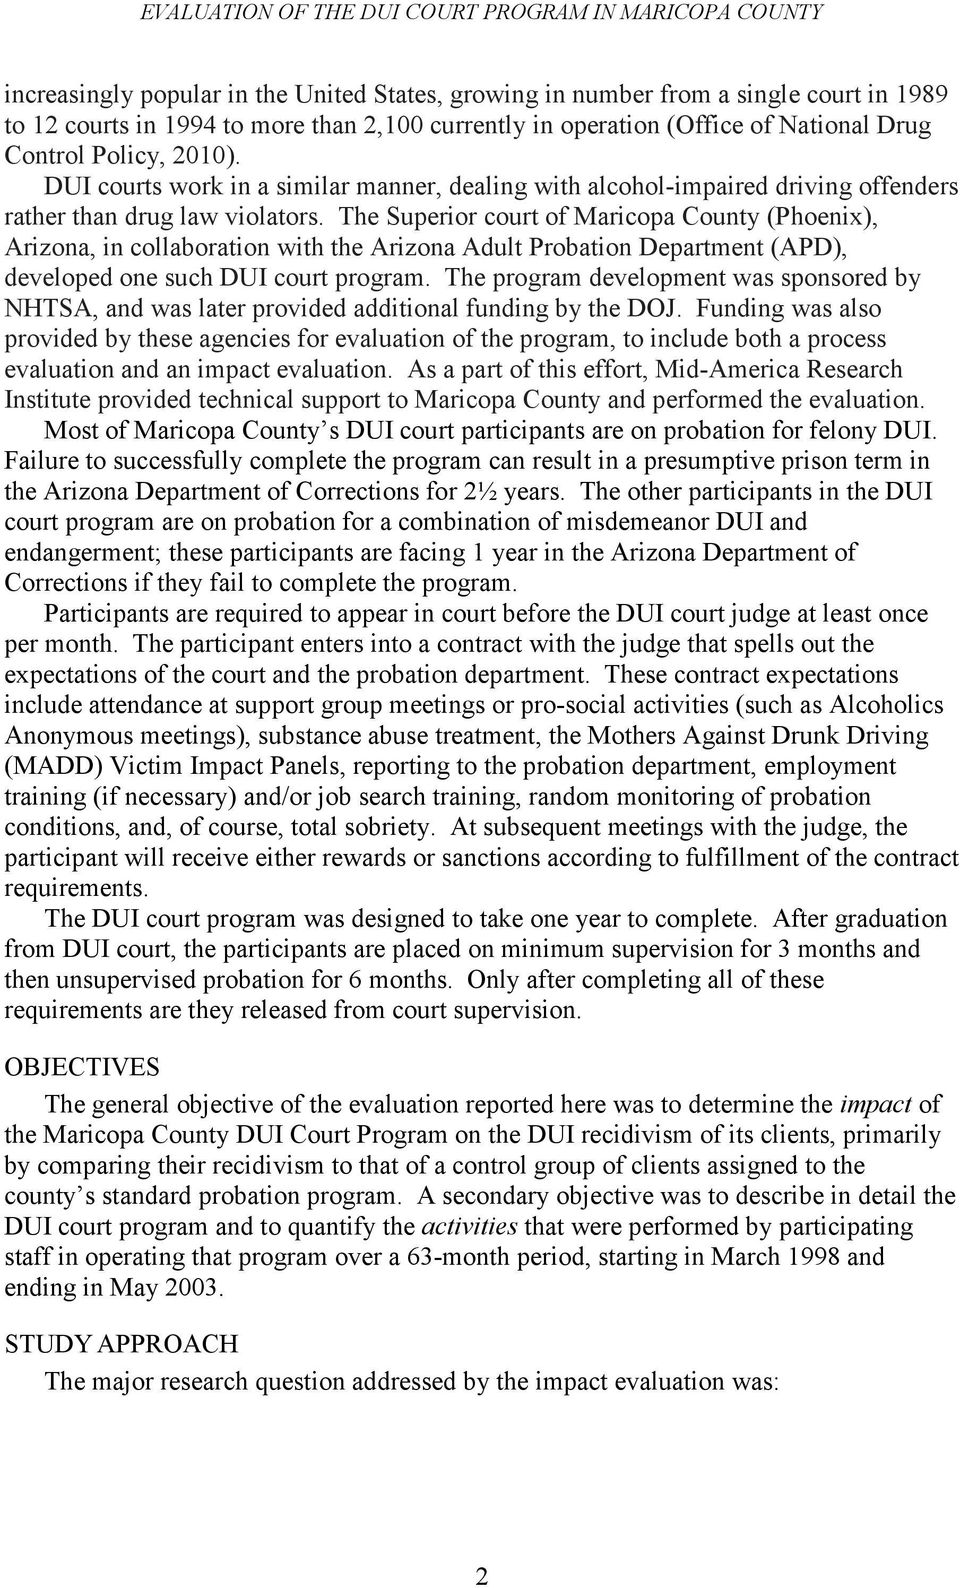 The Superior court of Maricopa County (Phoenix), Arizona, in collaboration with the Arizona Adult Probation Department (APD), developed one such DUI court program.